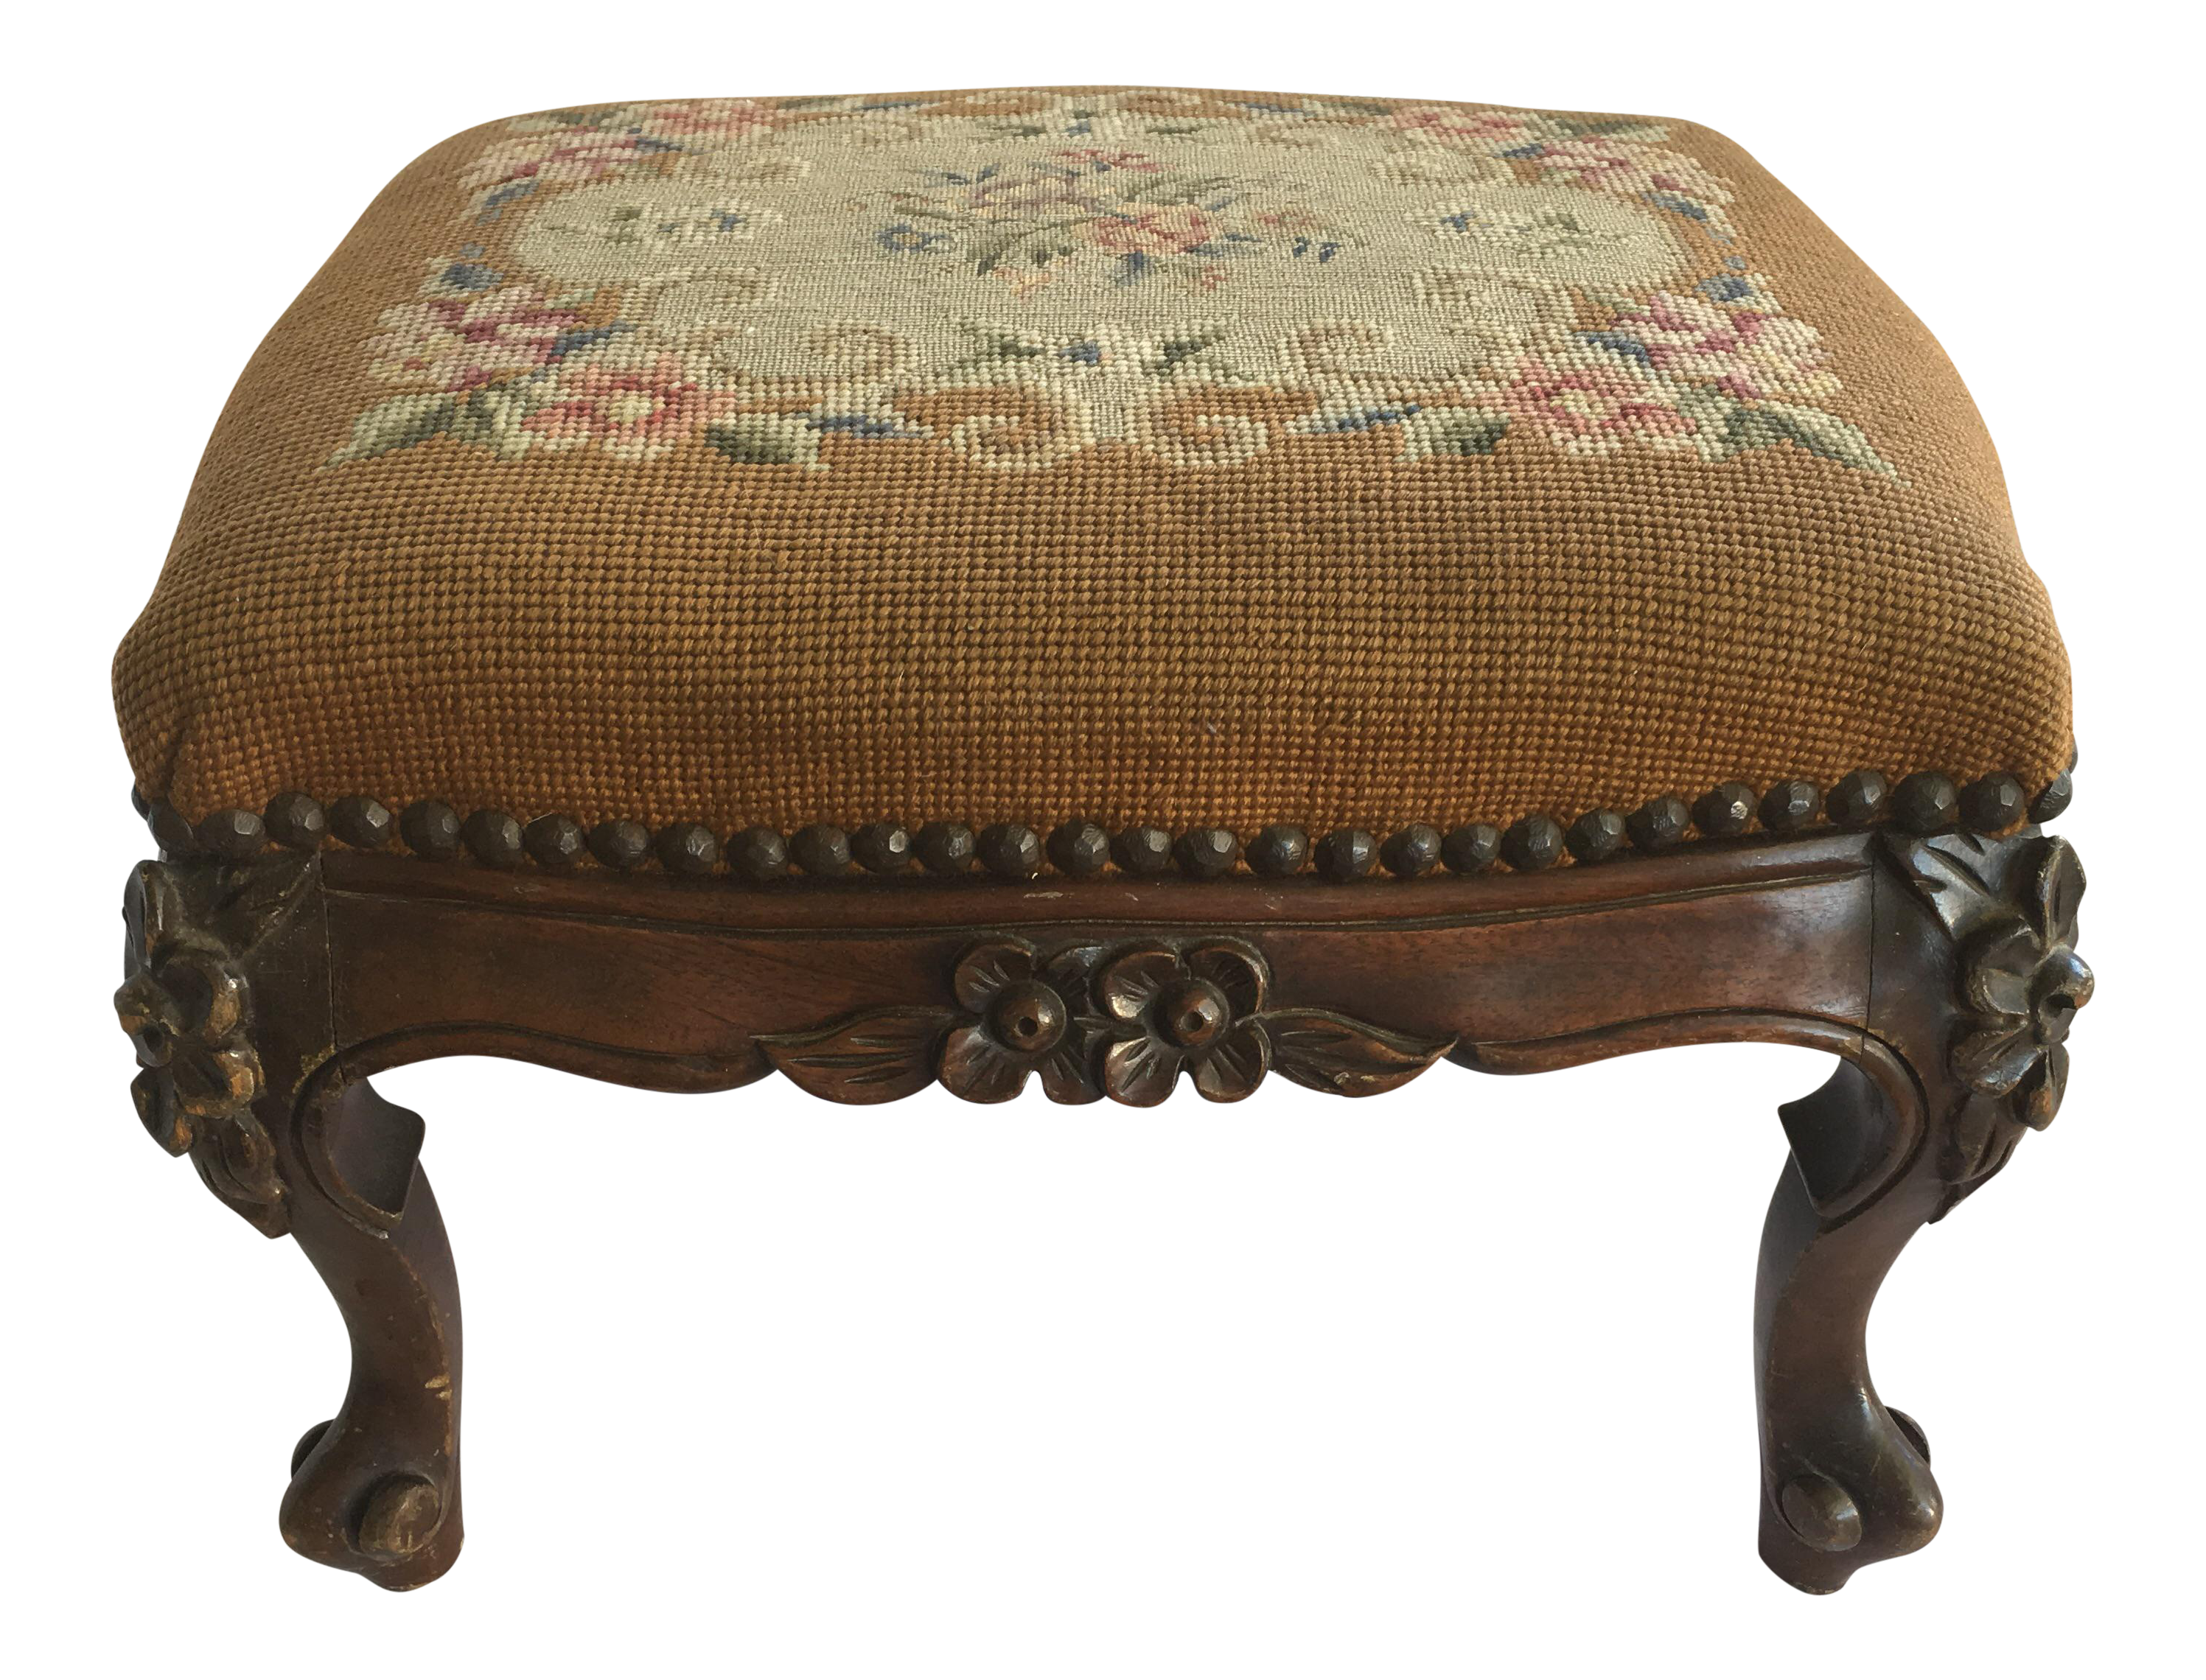 Antique colonial furniture co footstool chairish